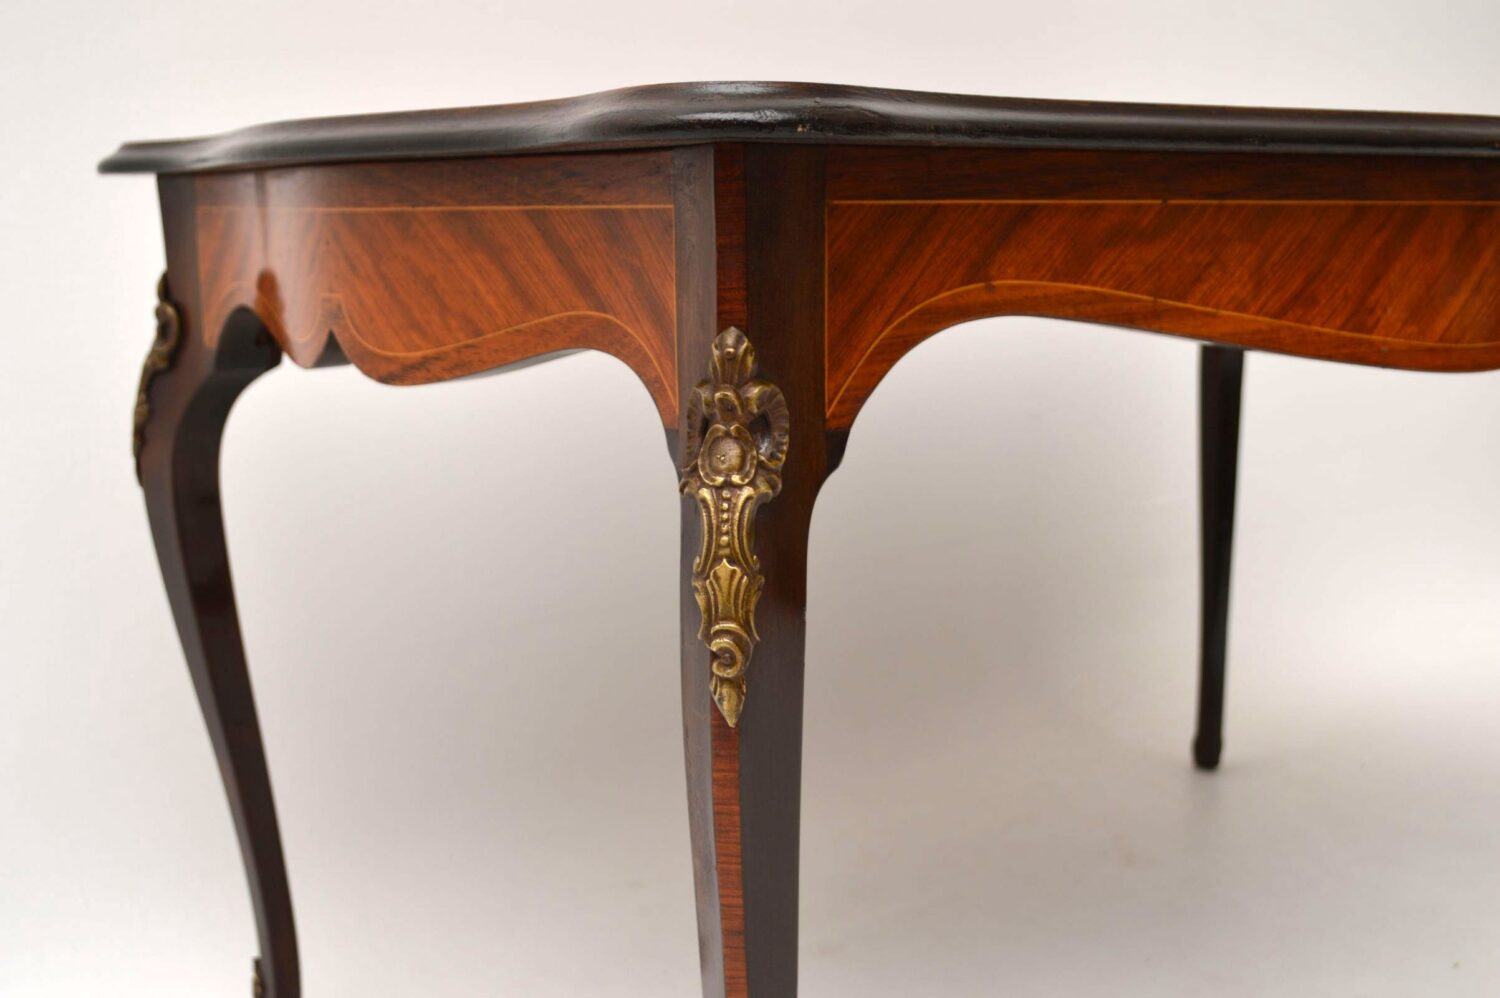 Antique French Style Inlaid Rosewood Coffee Table Marylebone Antiques